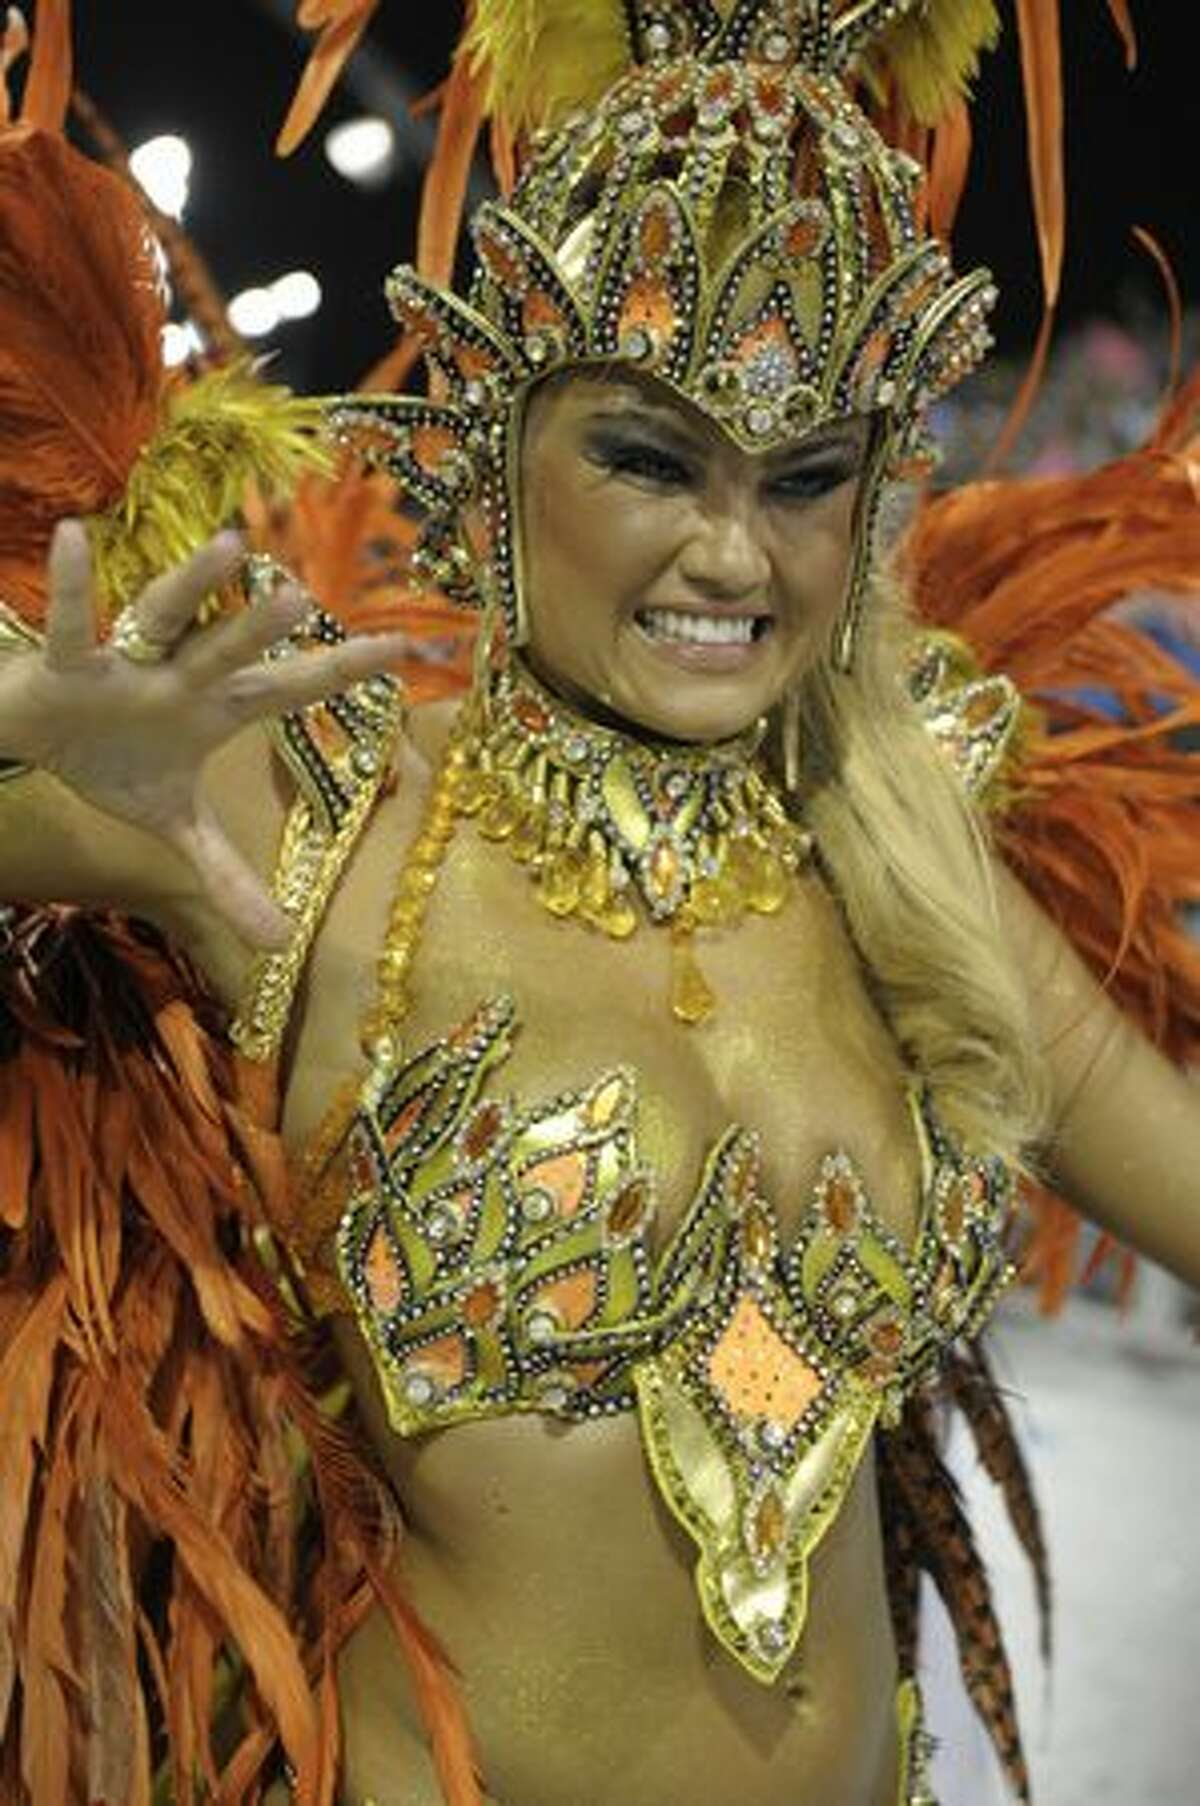 Brazilian model Ellen Roche, queen of the drummers of Rosas de Ouro samba school, dances during the opening night of parades at the Sambadrome, as part of Carnival celebrations in Sao Paulo, Brazil, early on Saturday, March 5, 2011. Brazil's Carnival kicked off with millions of people taking to the streets of the northeastern city of Salvador de Bahia to dance and party, effectively putting the nation on a week-long hiatus.